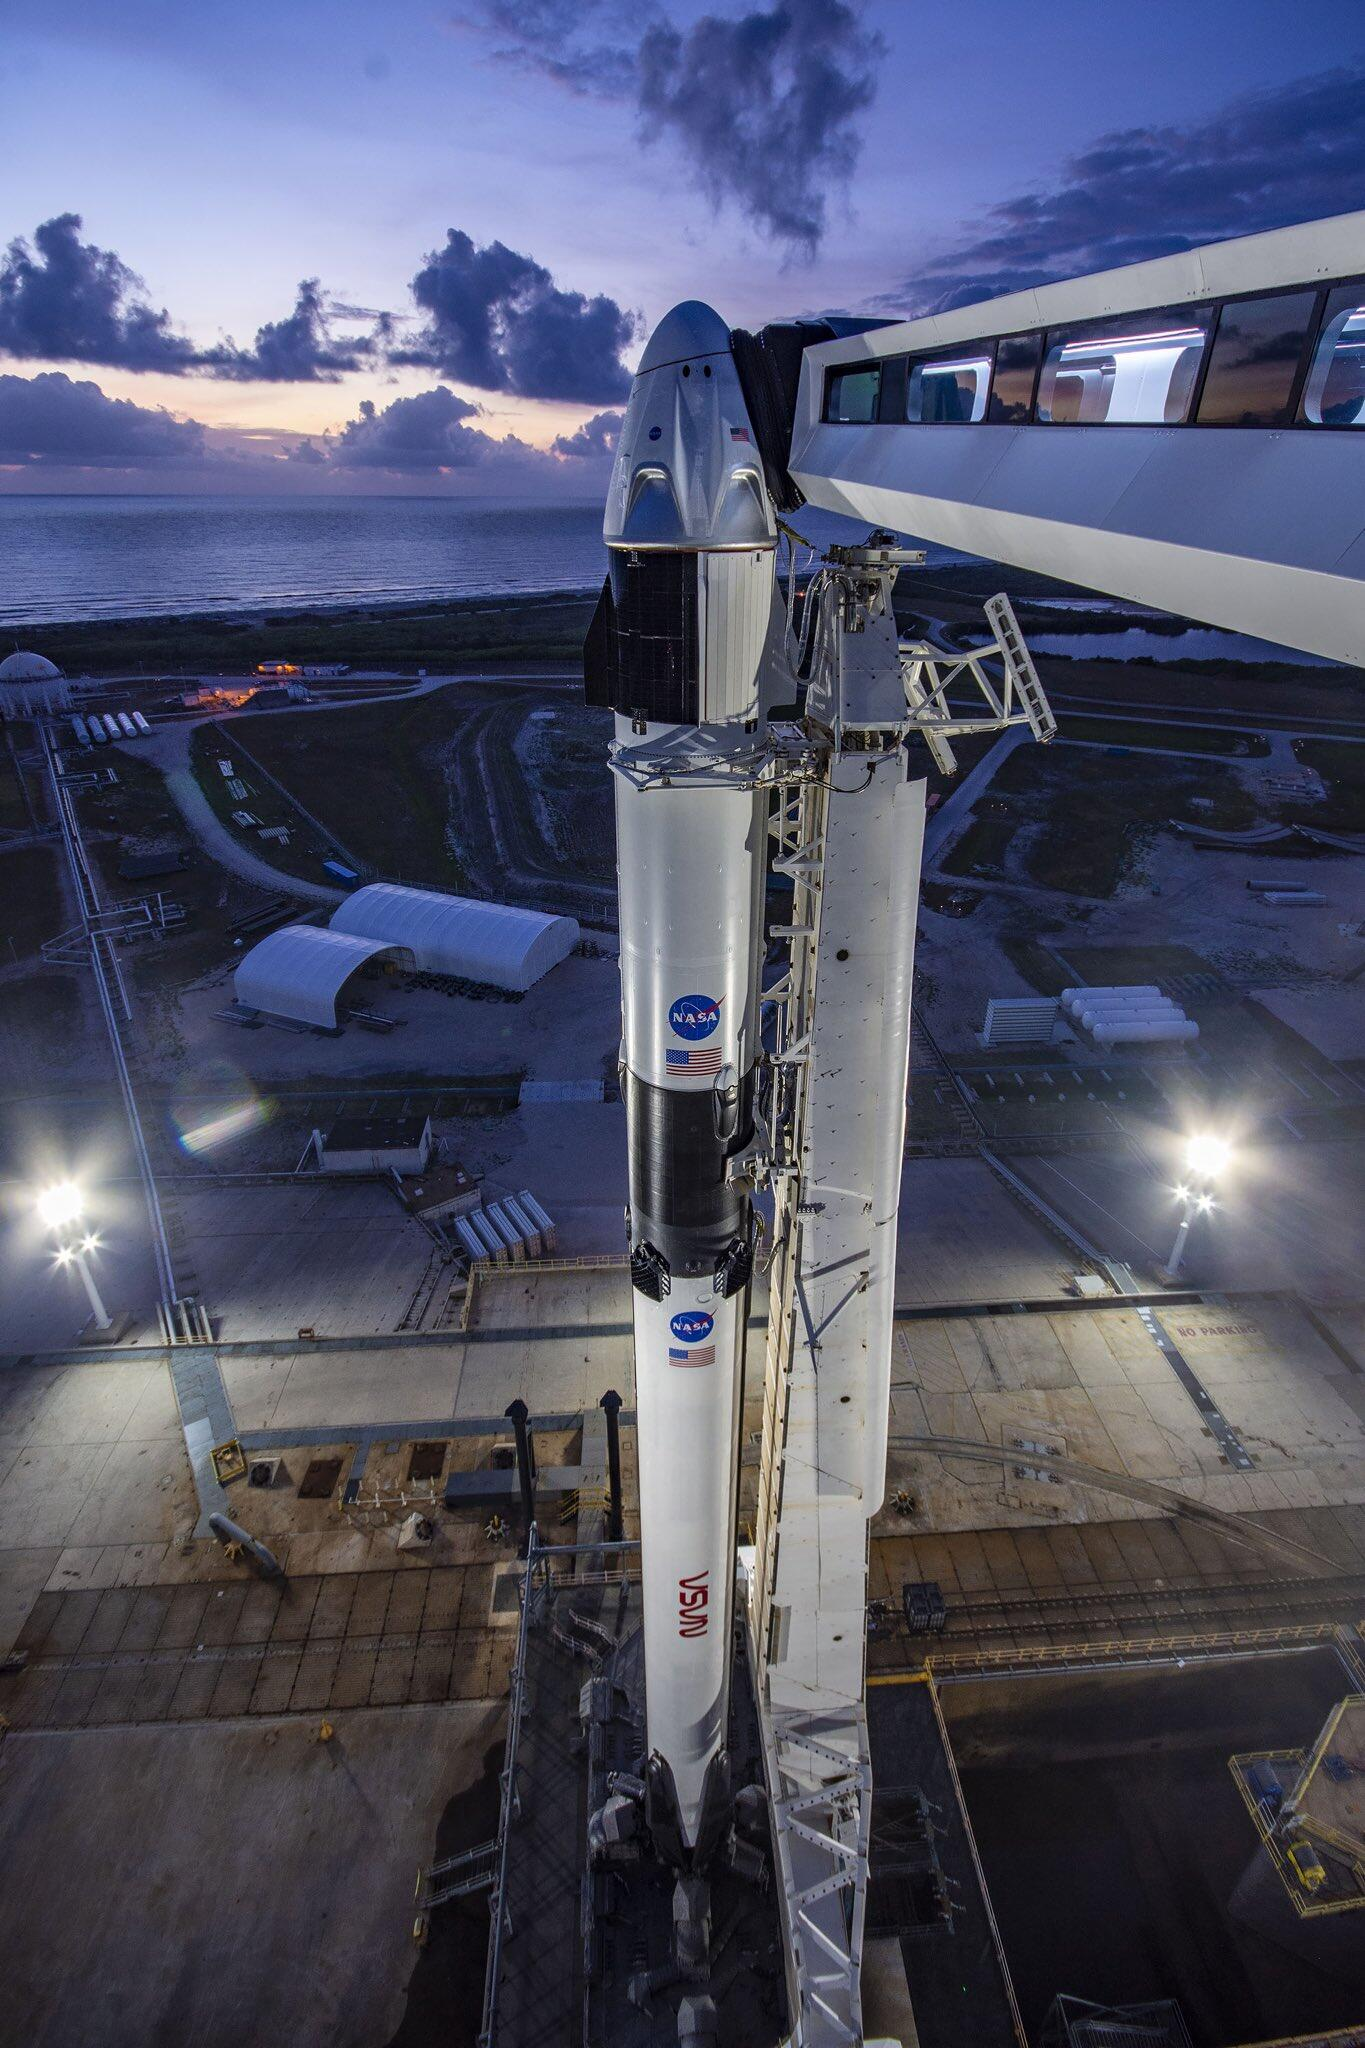 All systems go for SpaceX and NASA